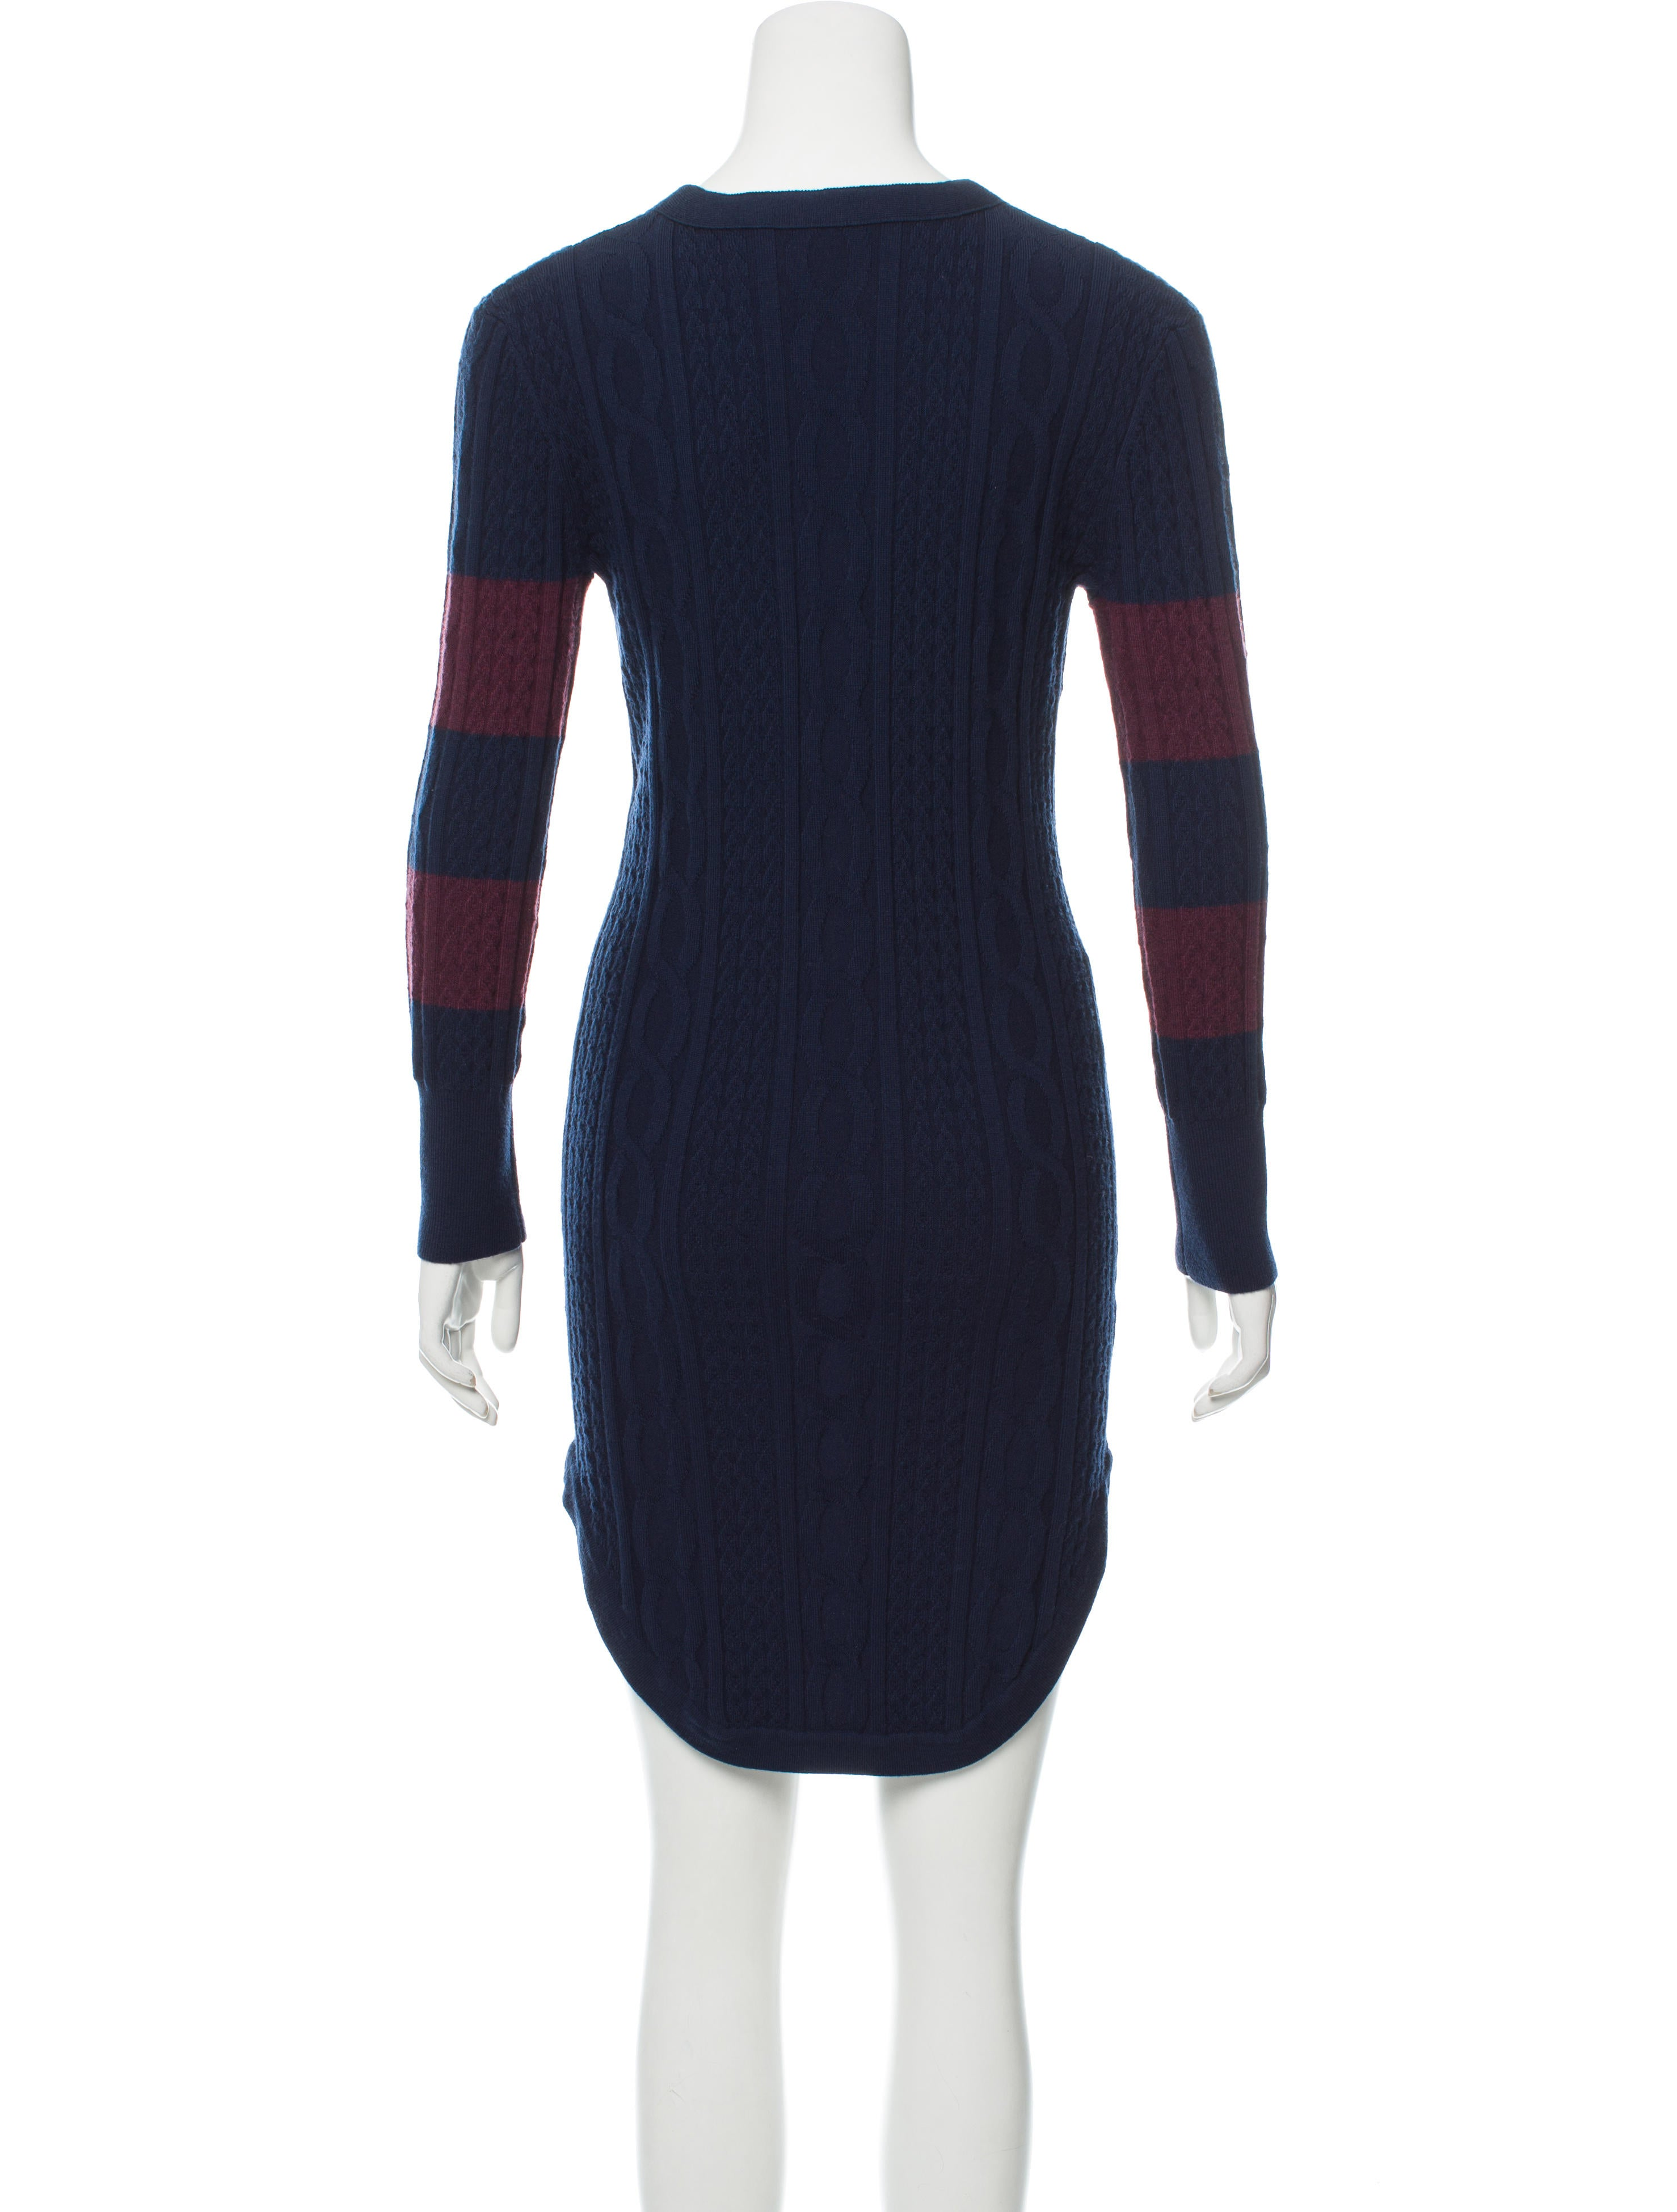 Timo Weiland Wool Sweater Dress - Clothing - TIM21048 | The RealReal